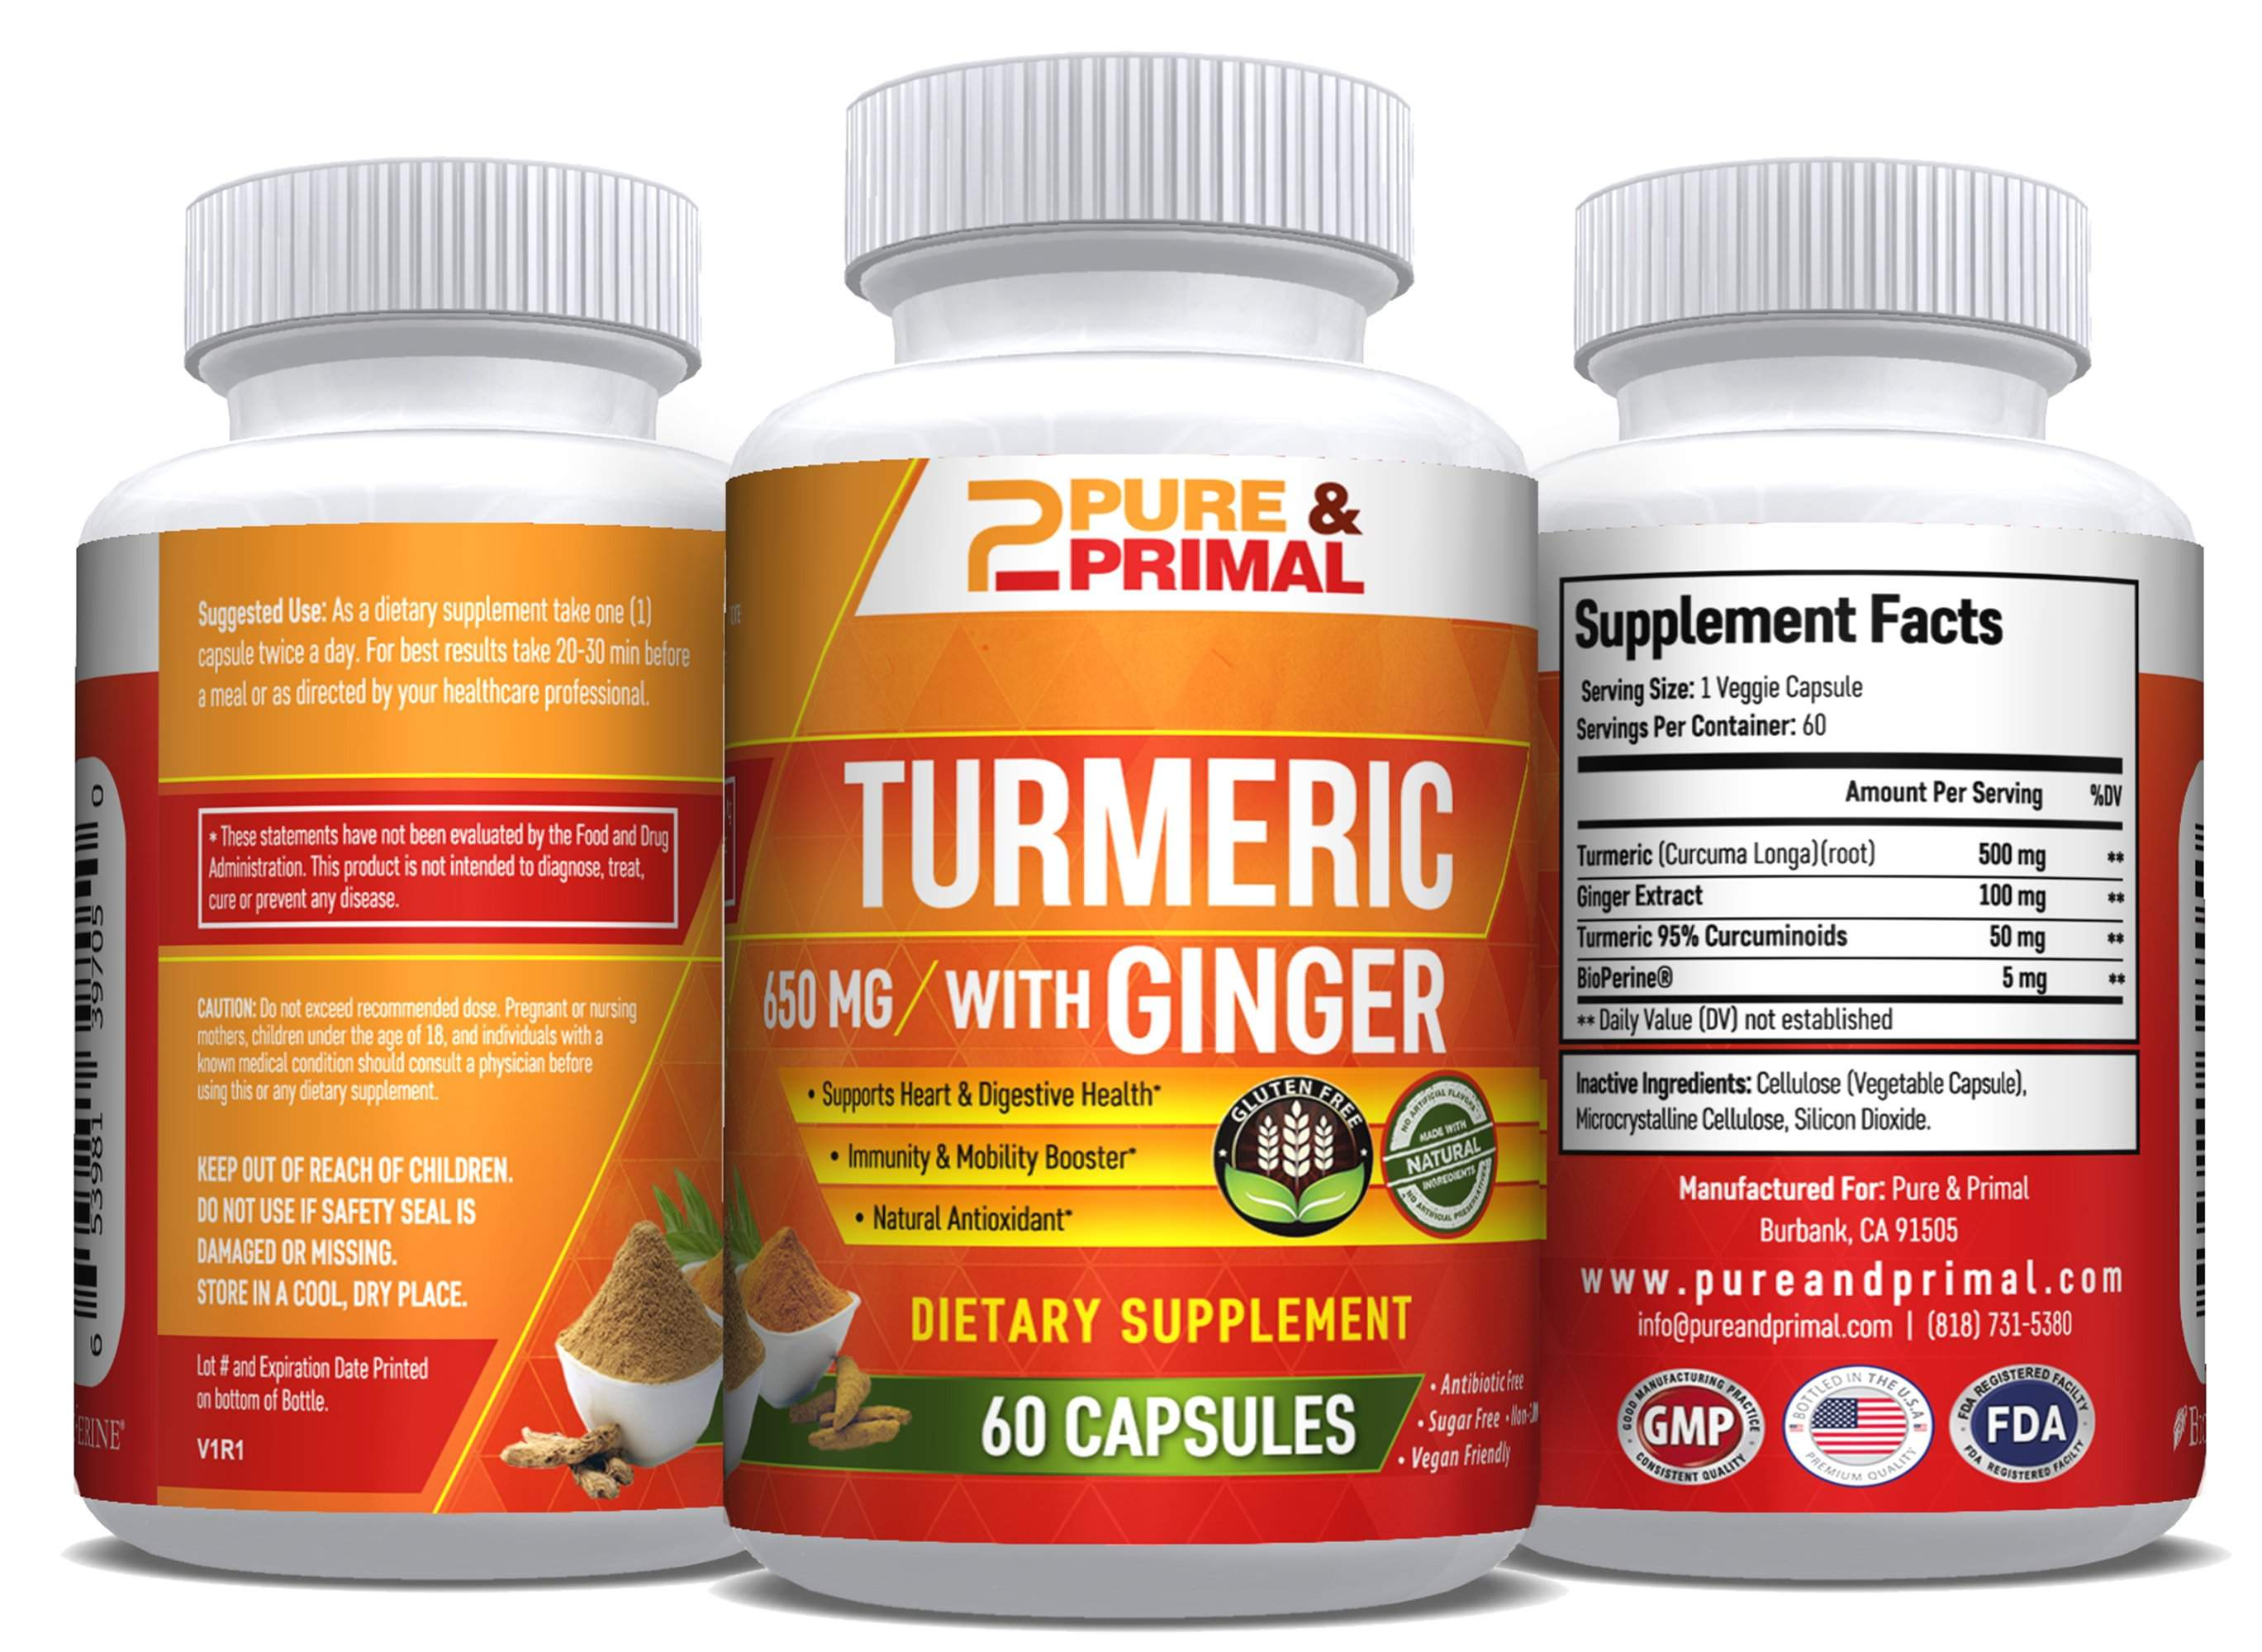 (2 Bottles) - Turmeric with Ginger - Powerful Antioxidant